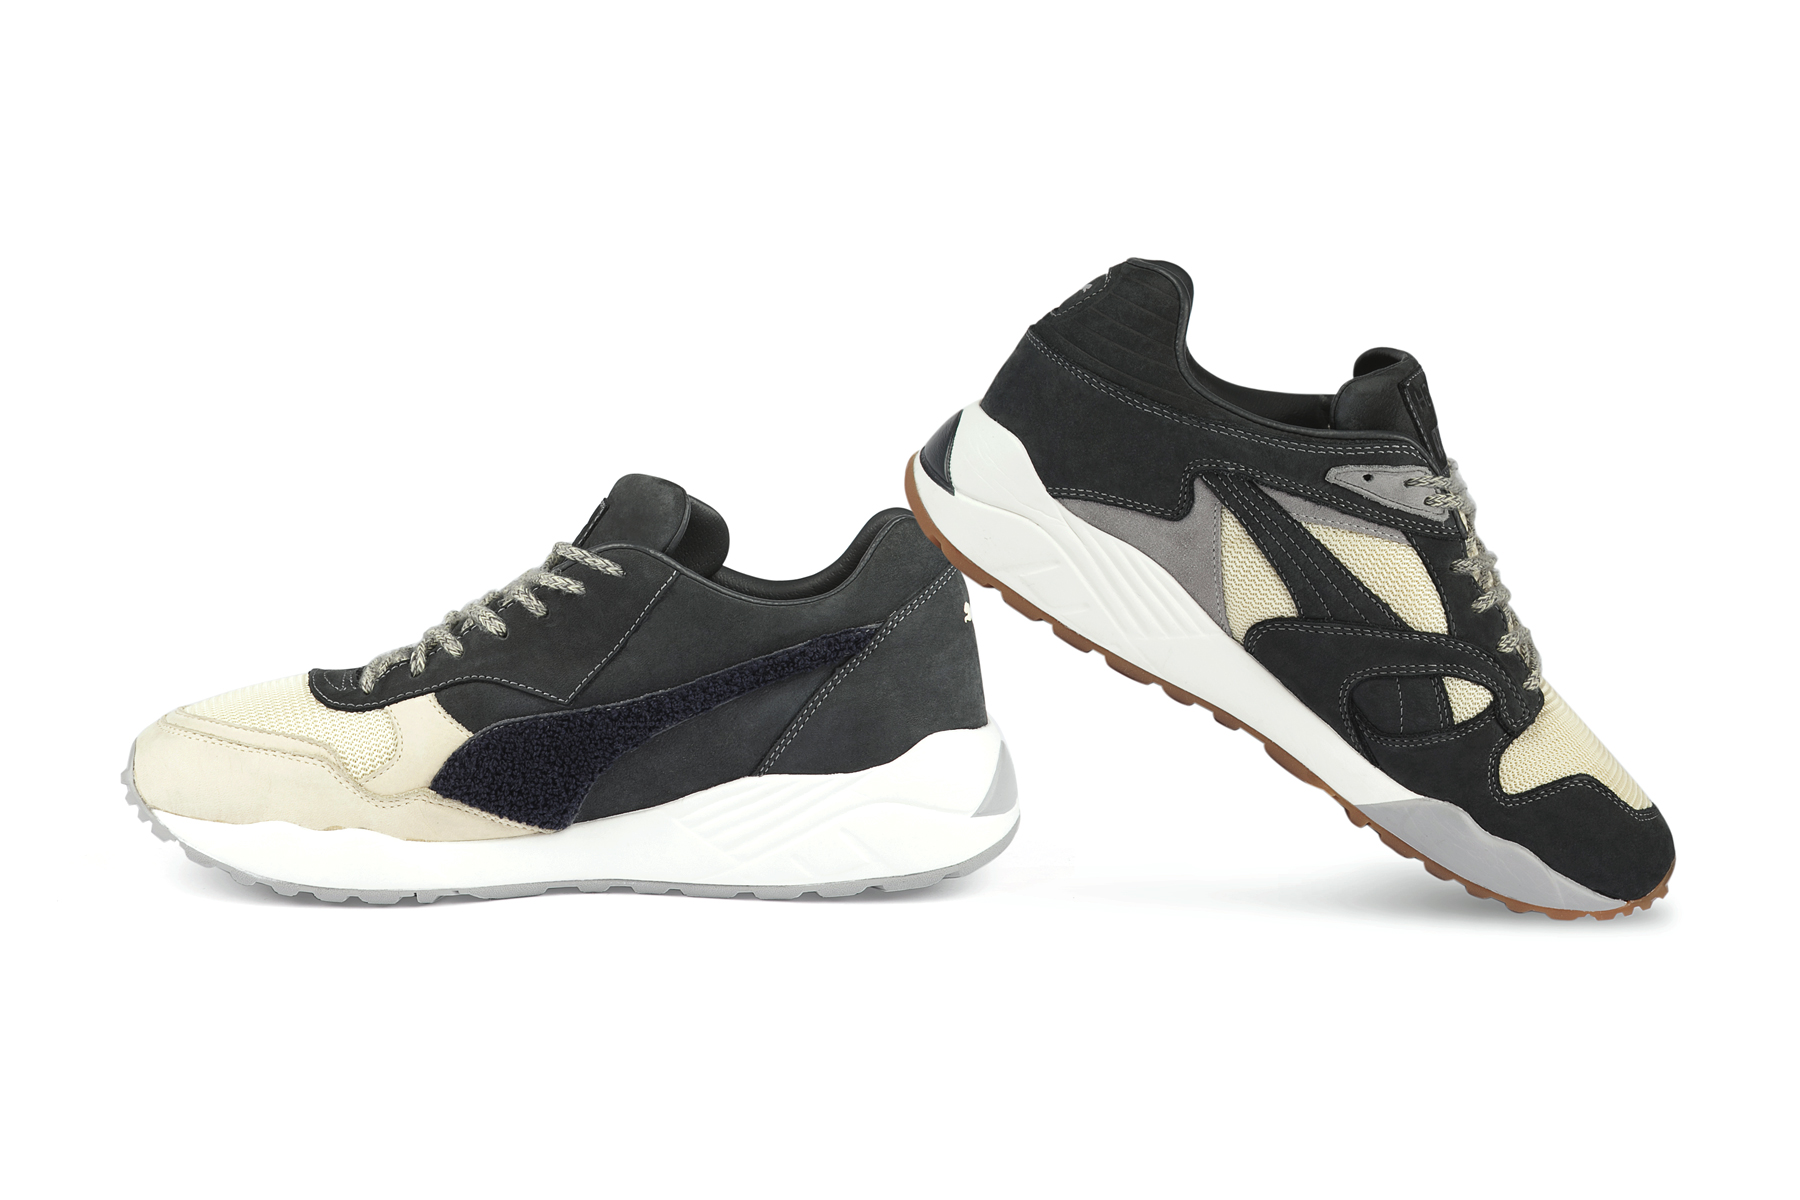 bwgh for puma darkshadow footwear collection